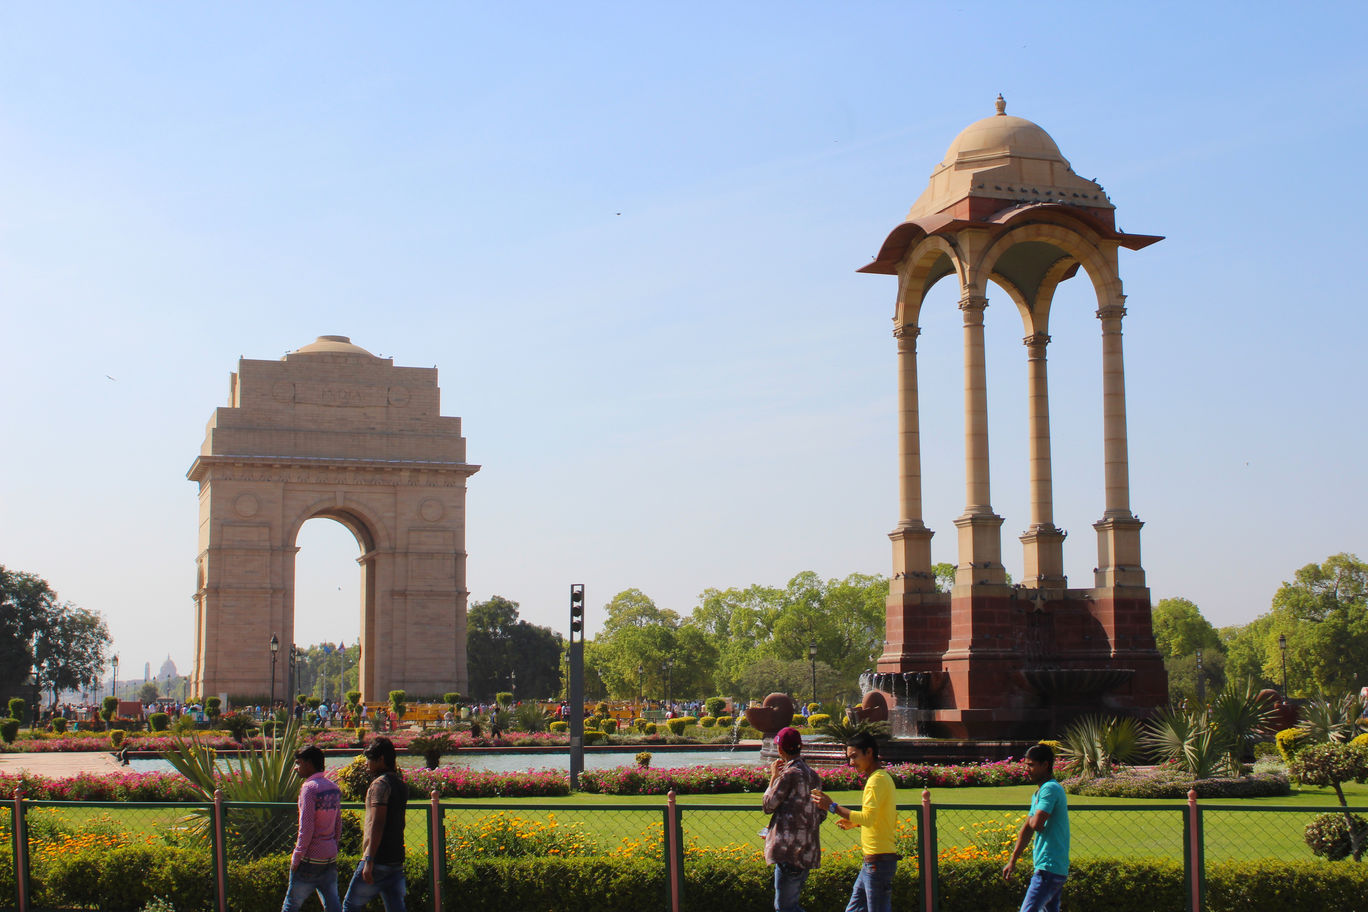 Photo of India Gate By Manav Chugh